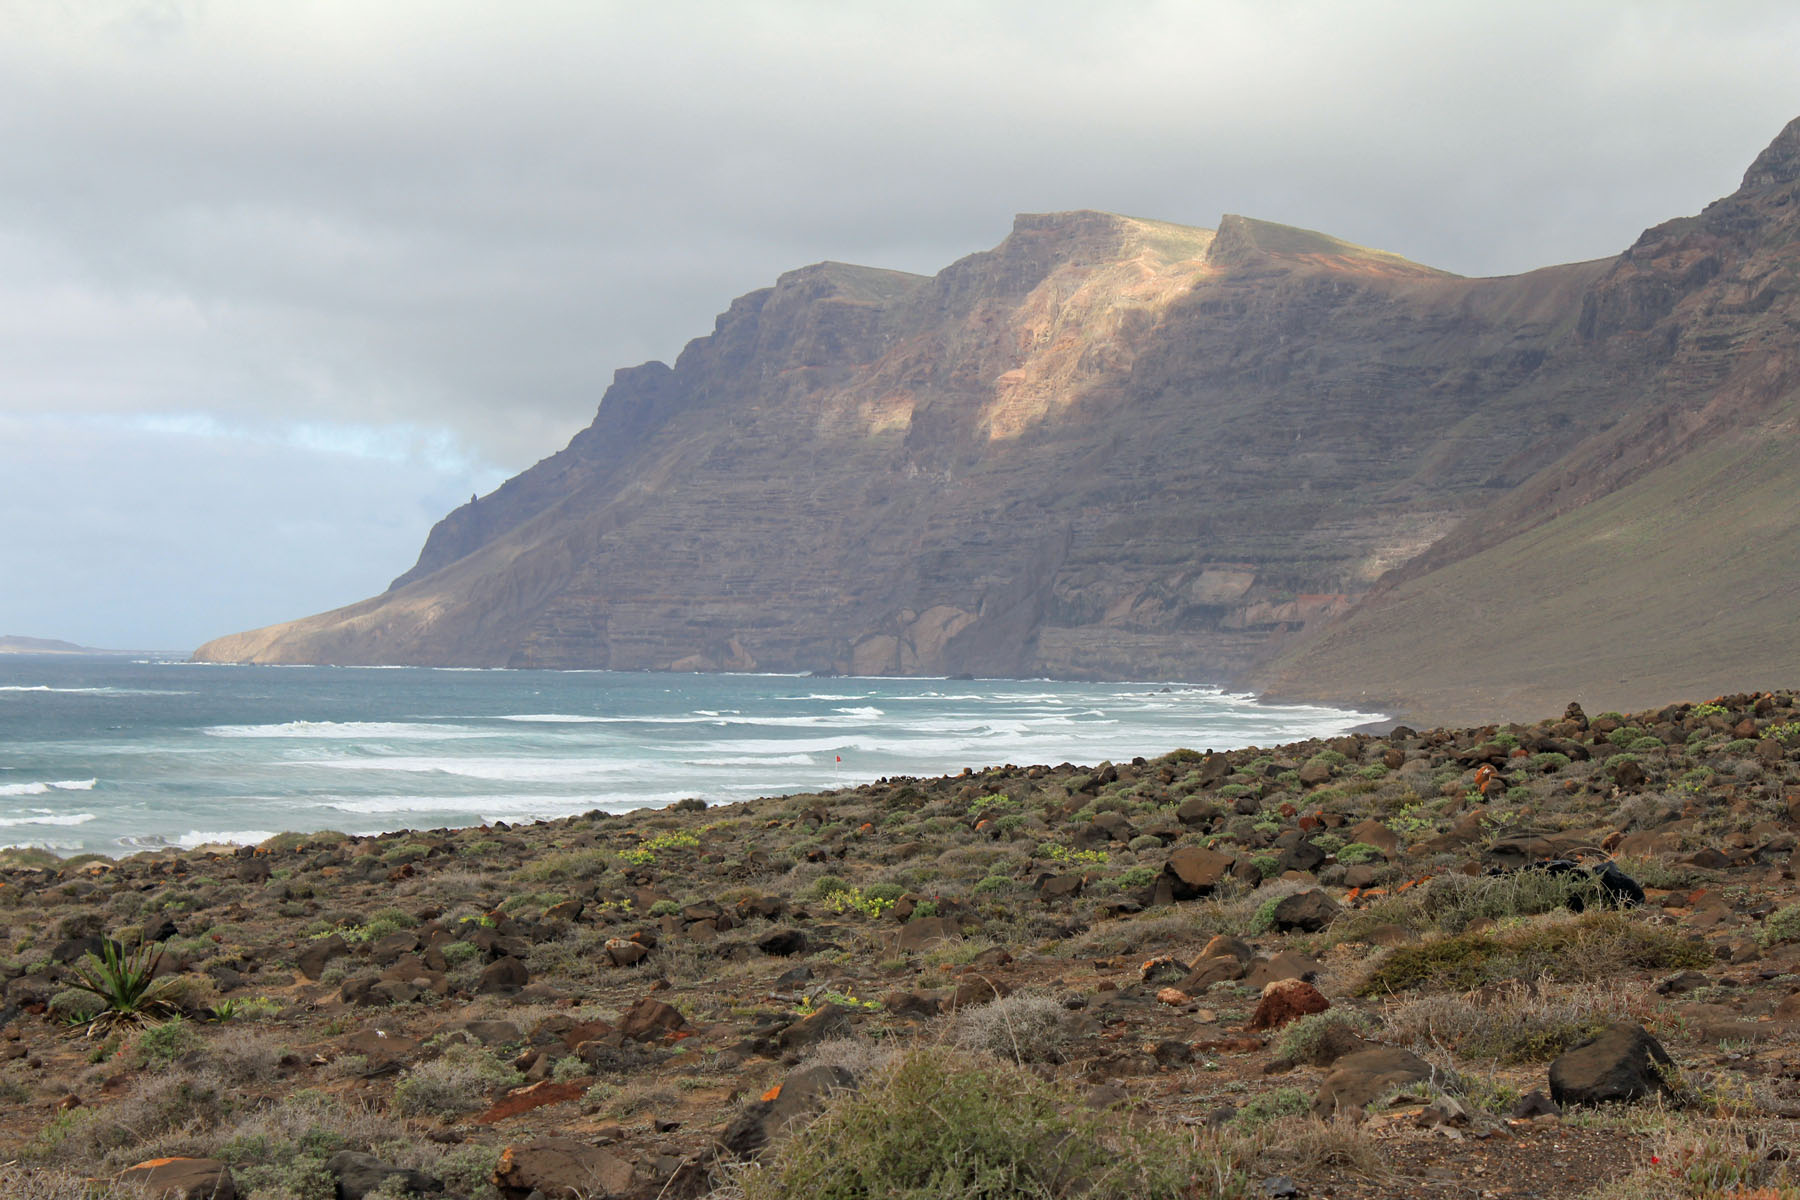 Canary Islands, Lanzarote, Risco de Famara